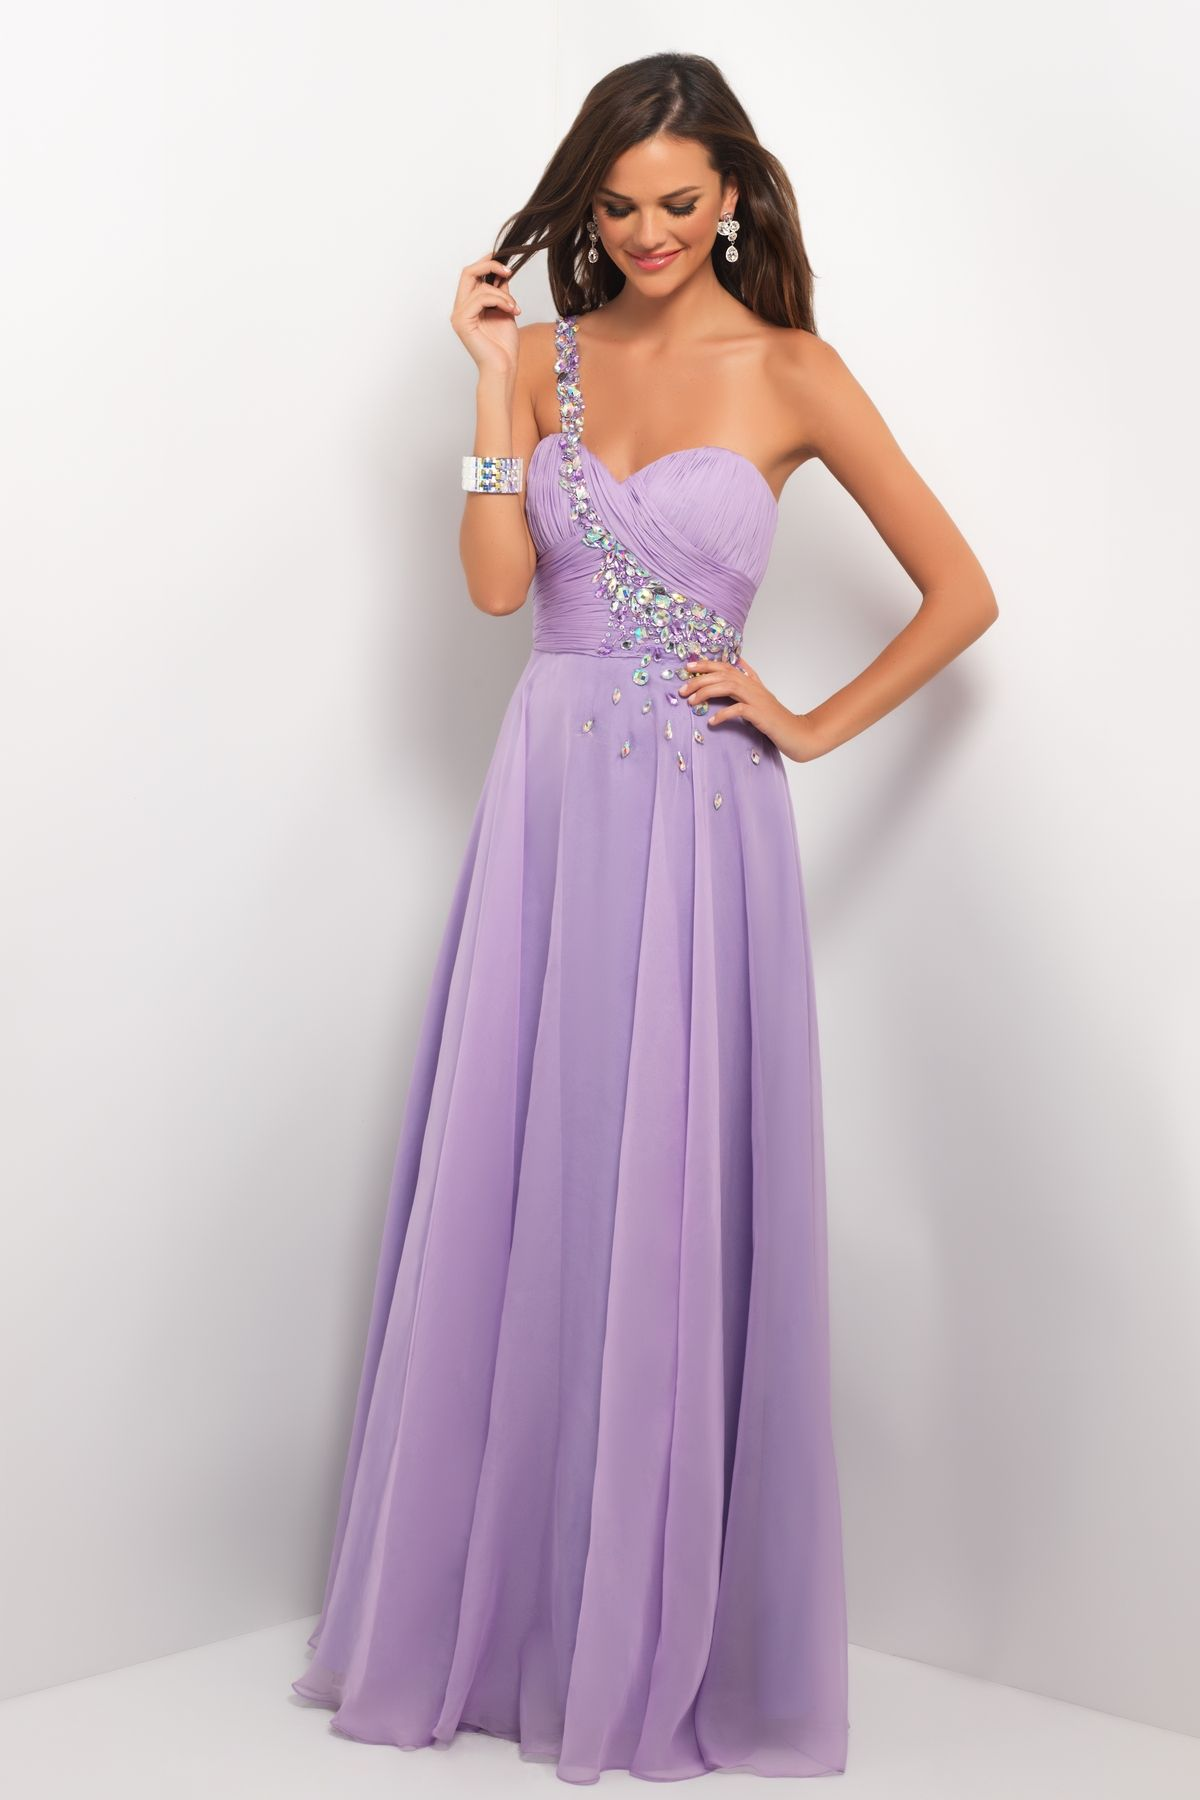 a7795f123d1b Assymetric crystals rock in this sexy prom dress! Jewels and stones define  a single shoulder and flow across your pleated bust into a full chiffon  dance ...